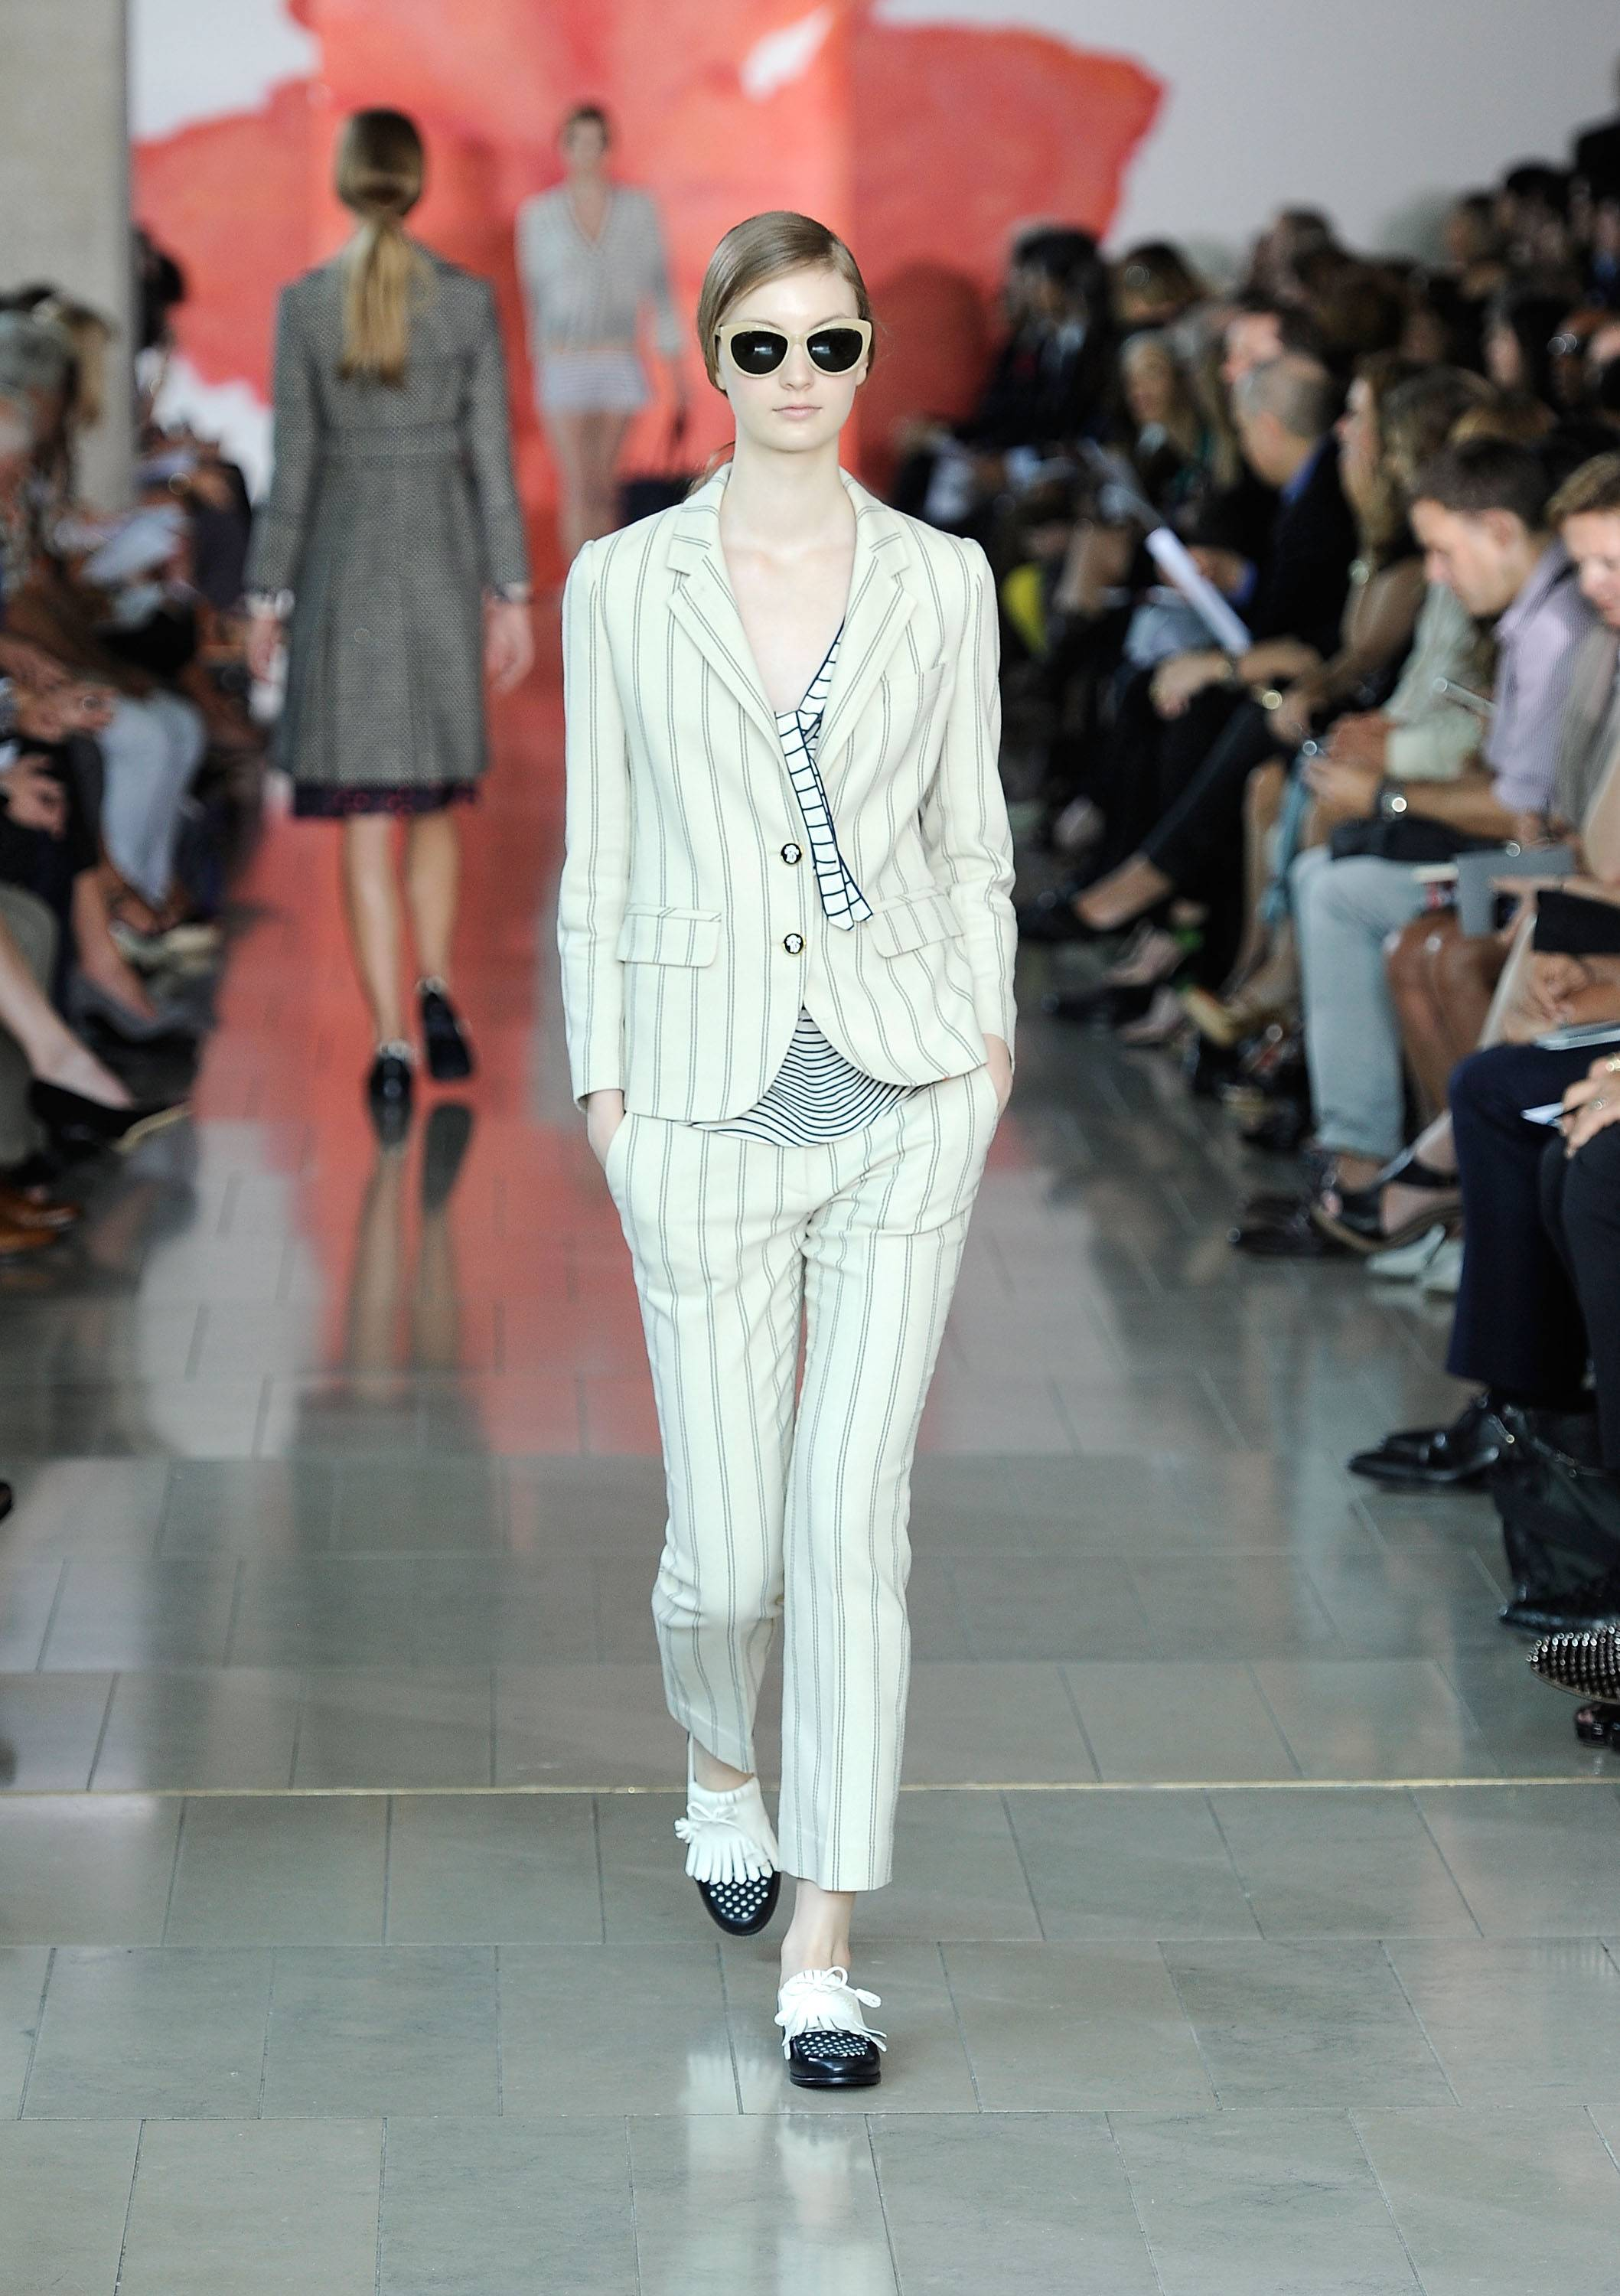 Tory Burch Runway Presentation 8, Mercedes Benz Fashion Week, s/s 2012